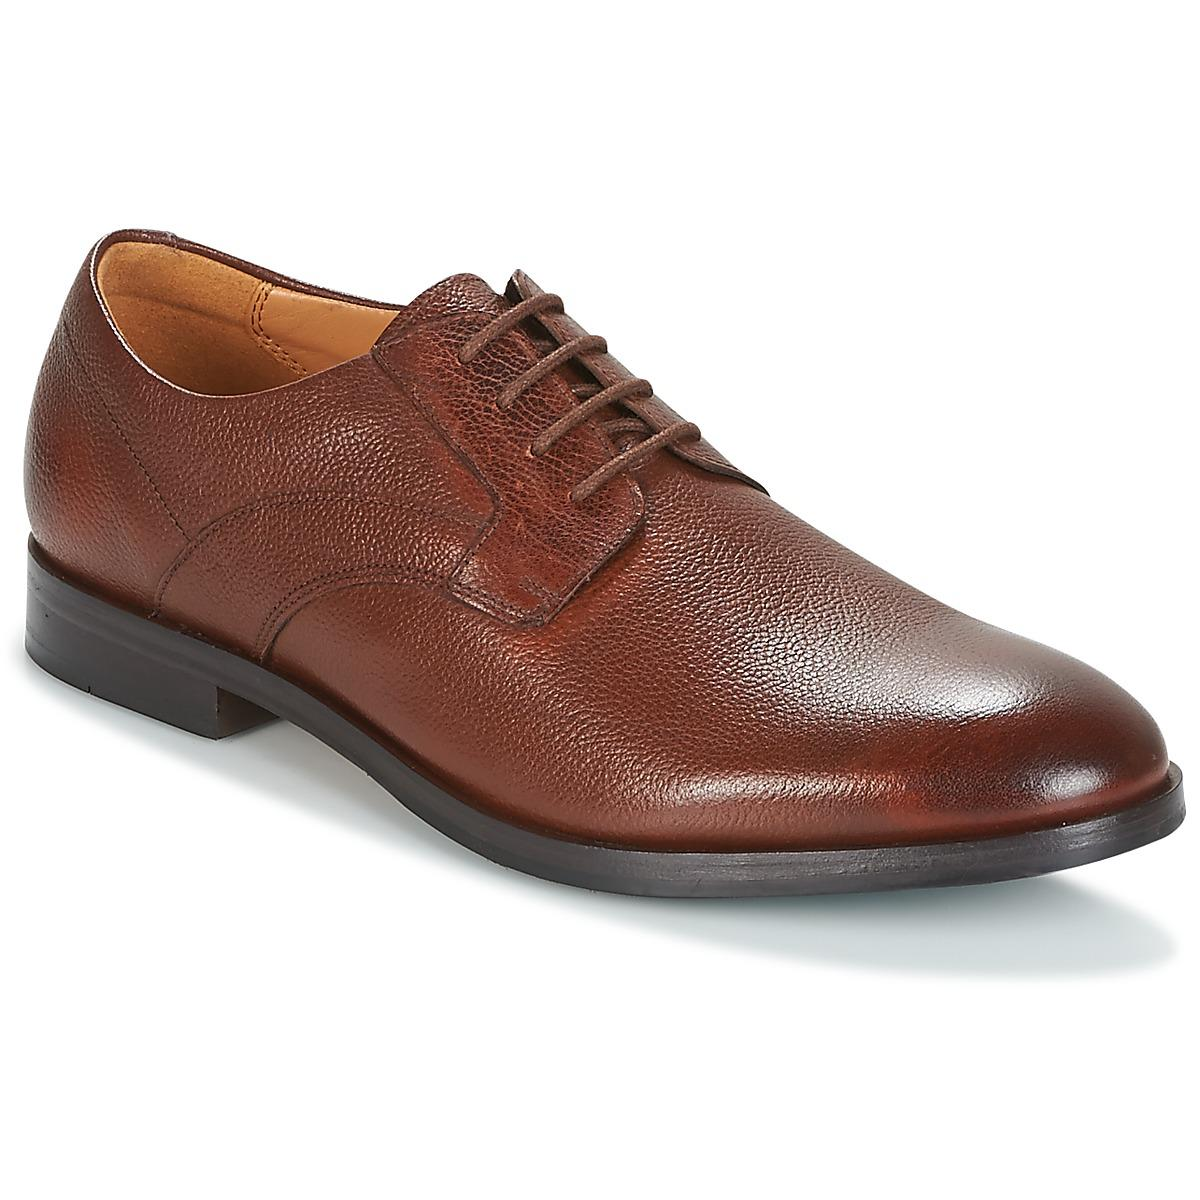 9004d96f44f Clarks Corfield Mix Men s Smart   Formal Shoes In Brown in Brown for ...